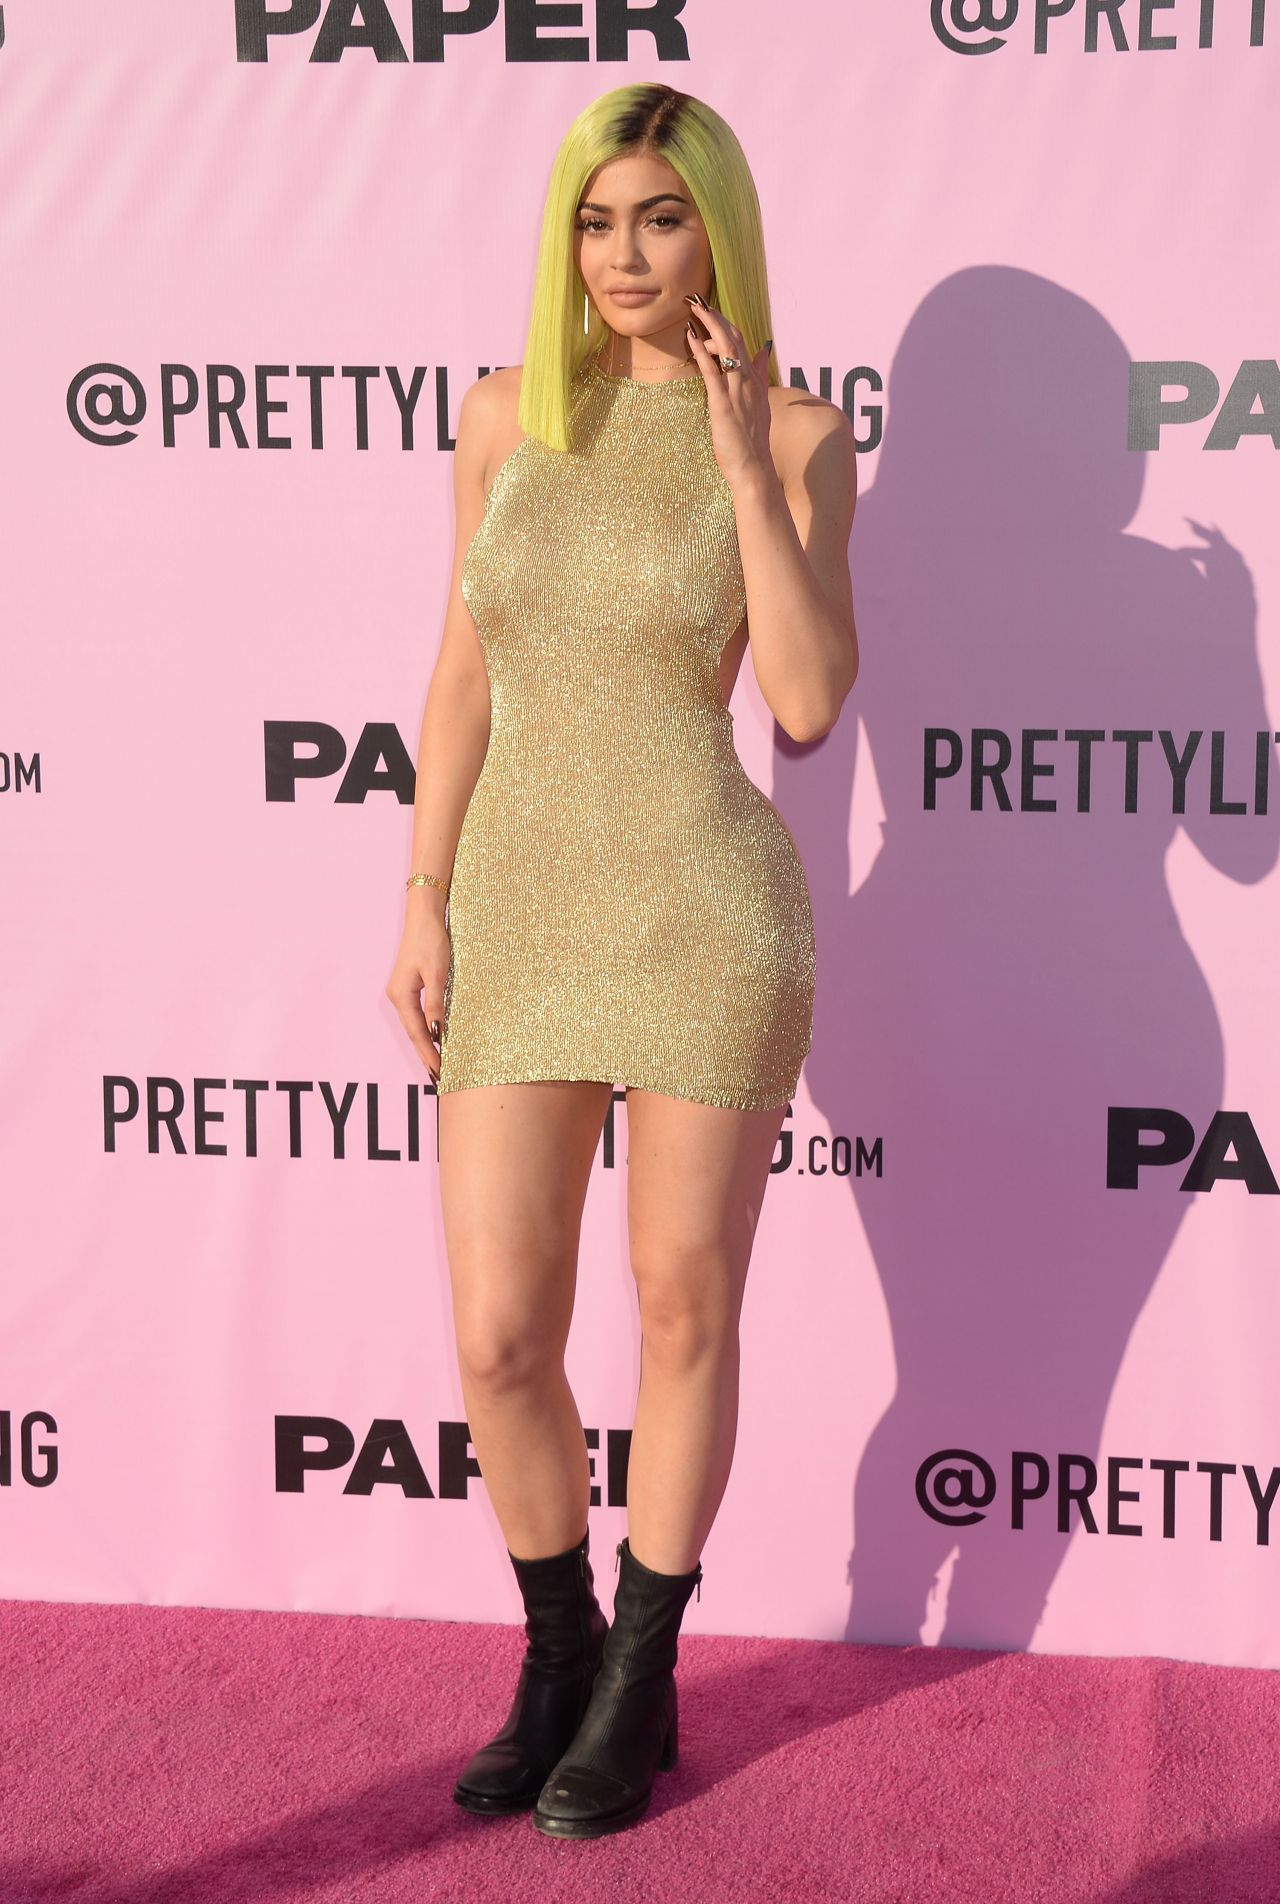 Kylie Jenner At Pretty Little Thing X Paper Magazine Event